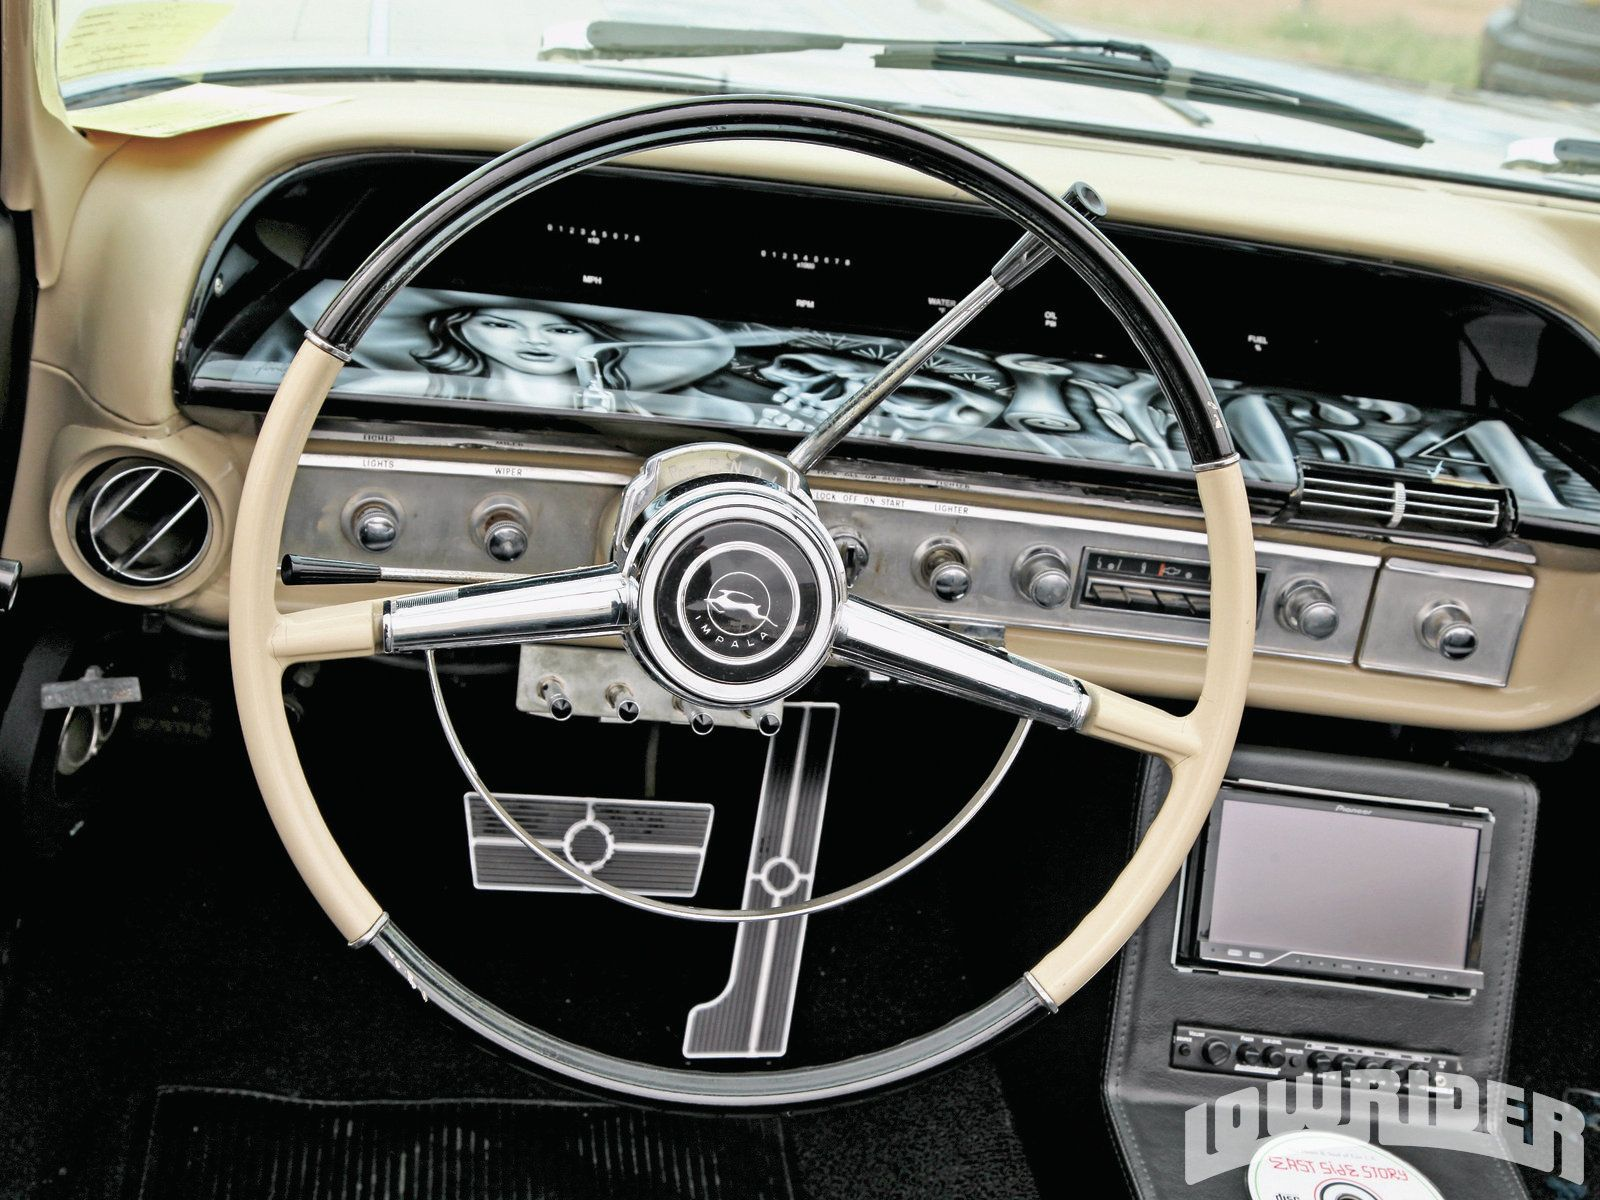 1964 Chevrolet Impala Dakota Digital Dash Klasik Arabalar